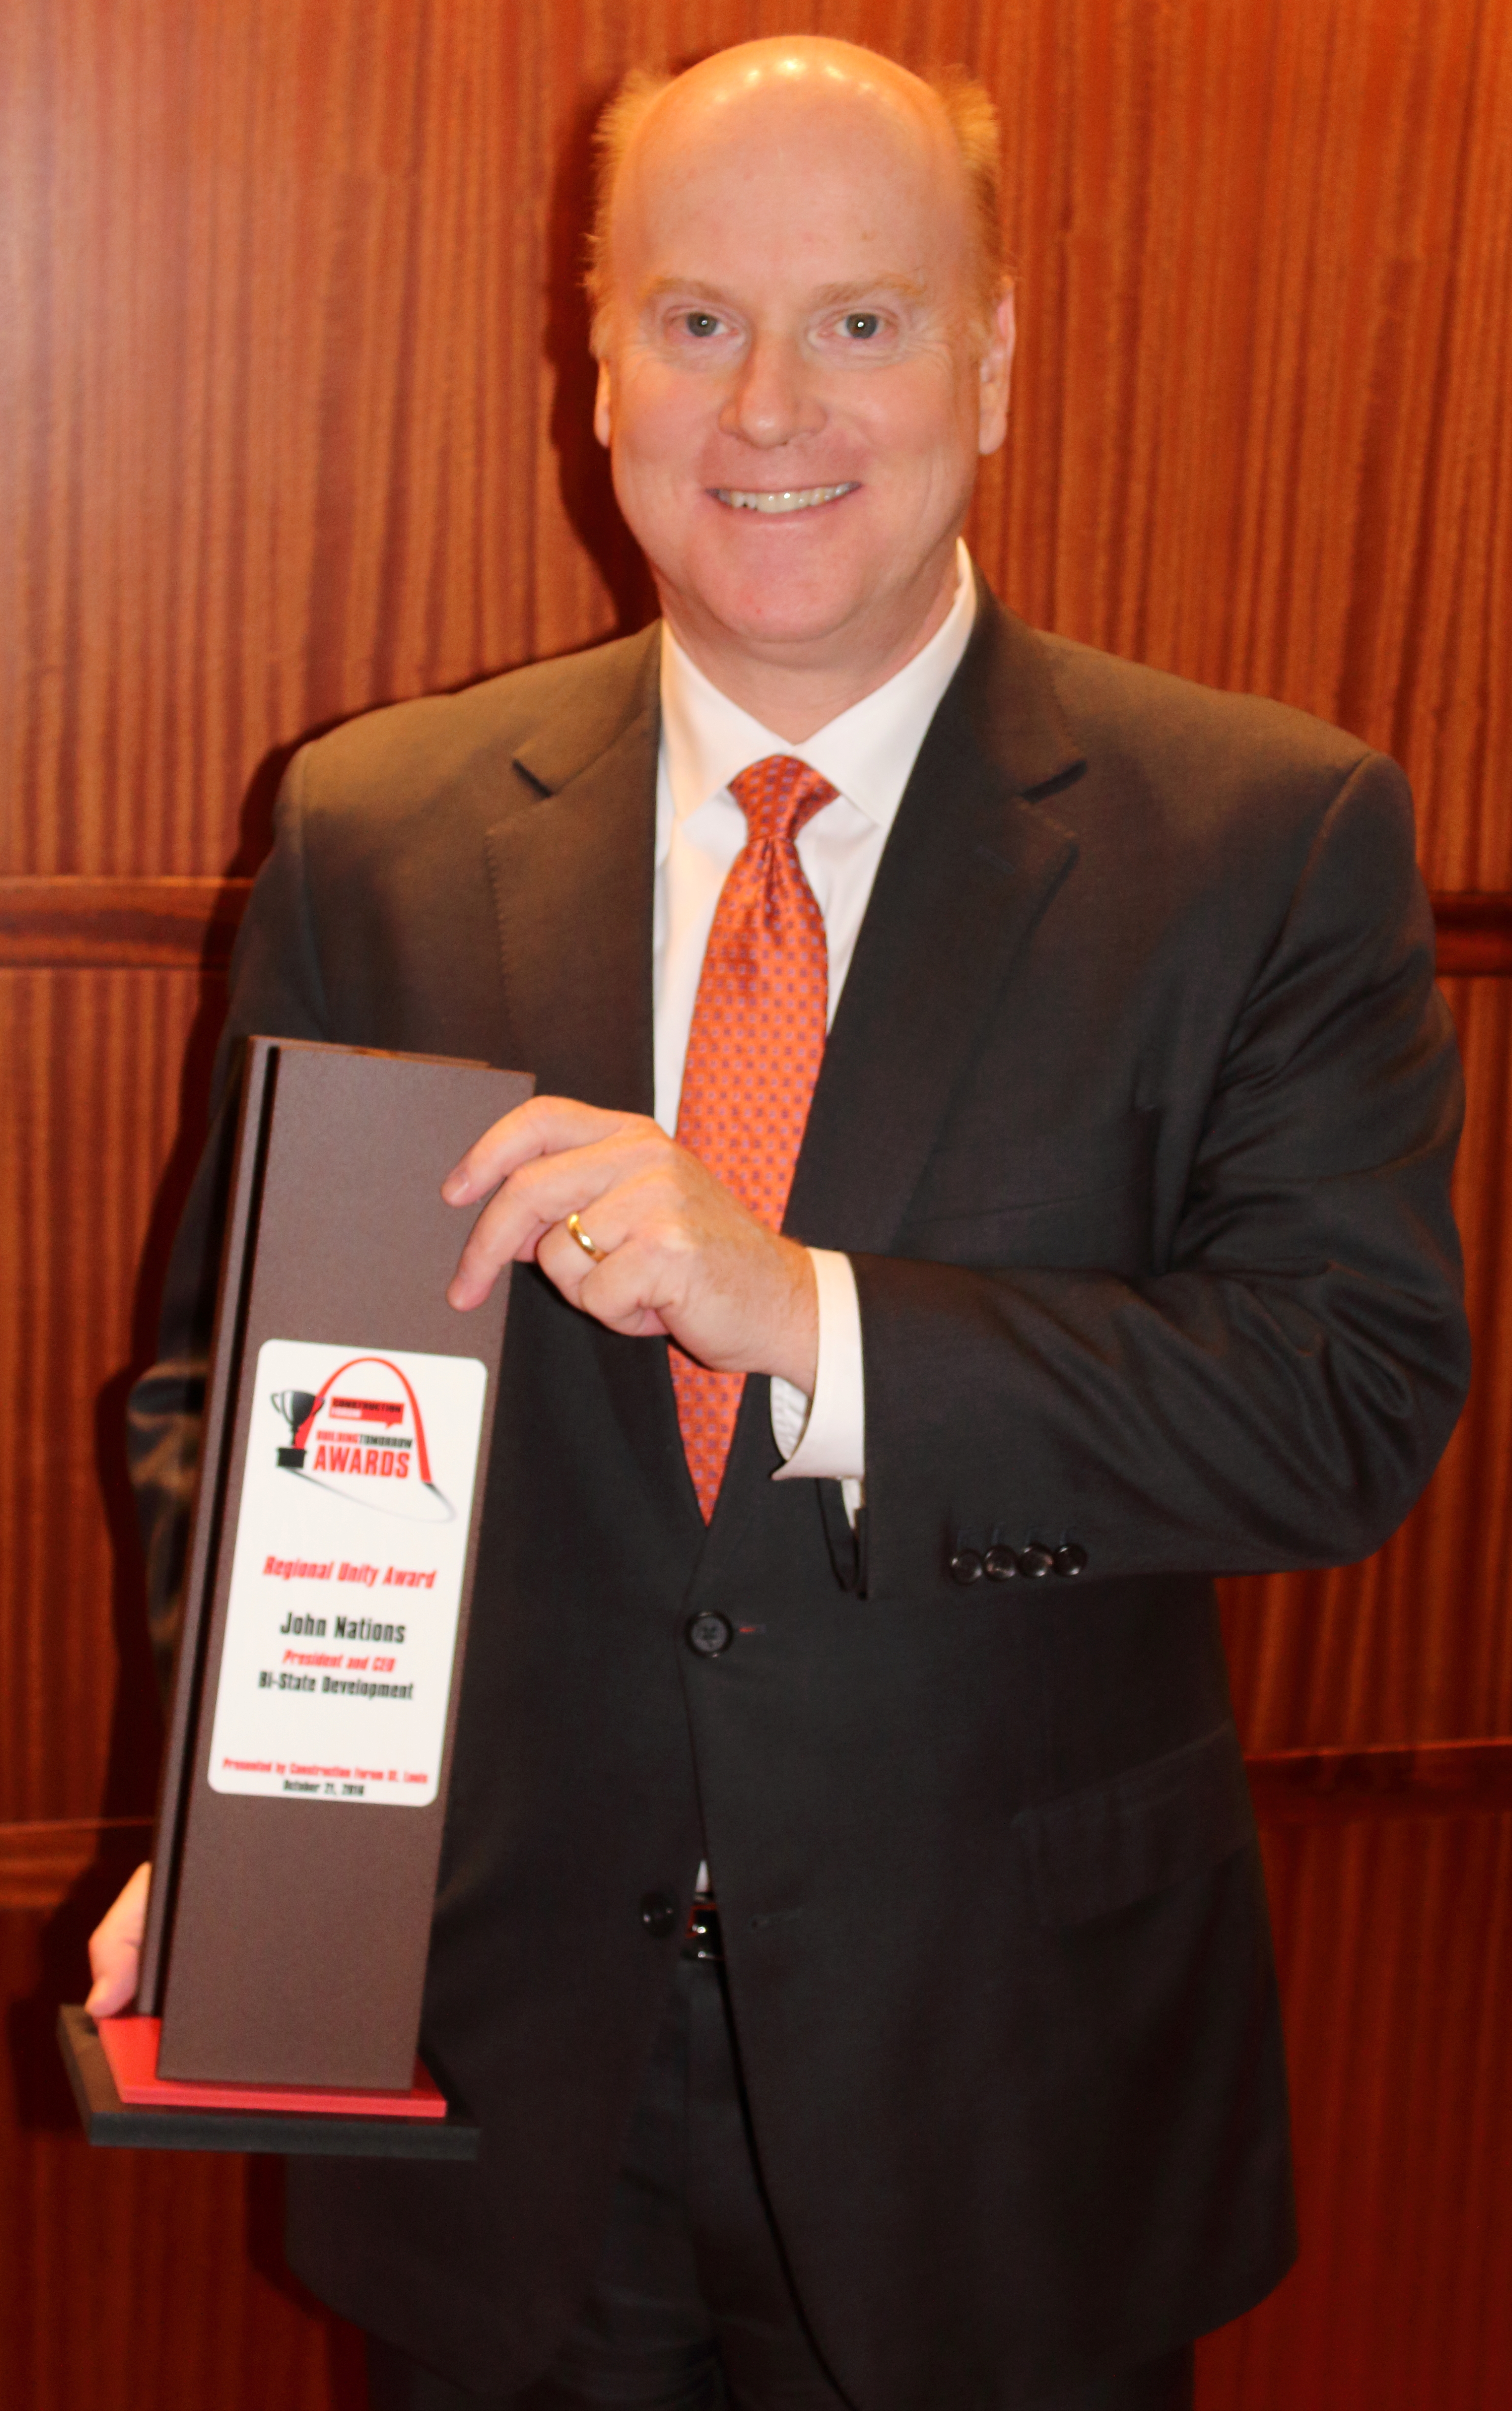 Construction Forum STL Honors Bi-State Development President and CEO John Nations With Regional Unity Award